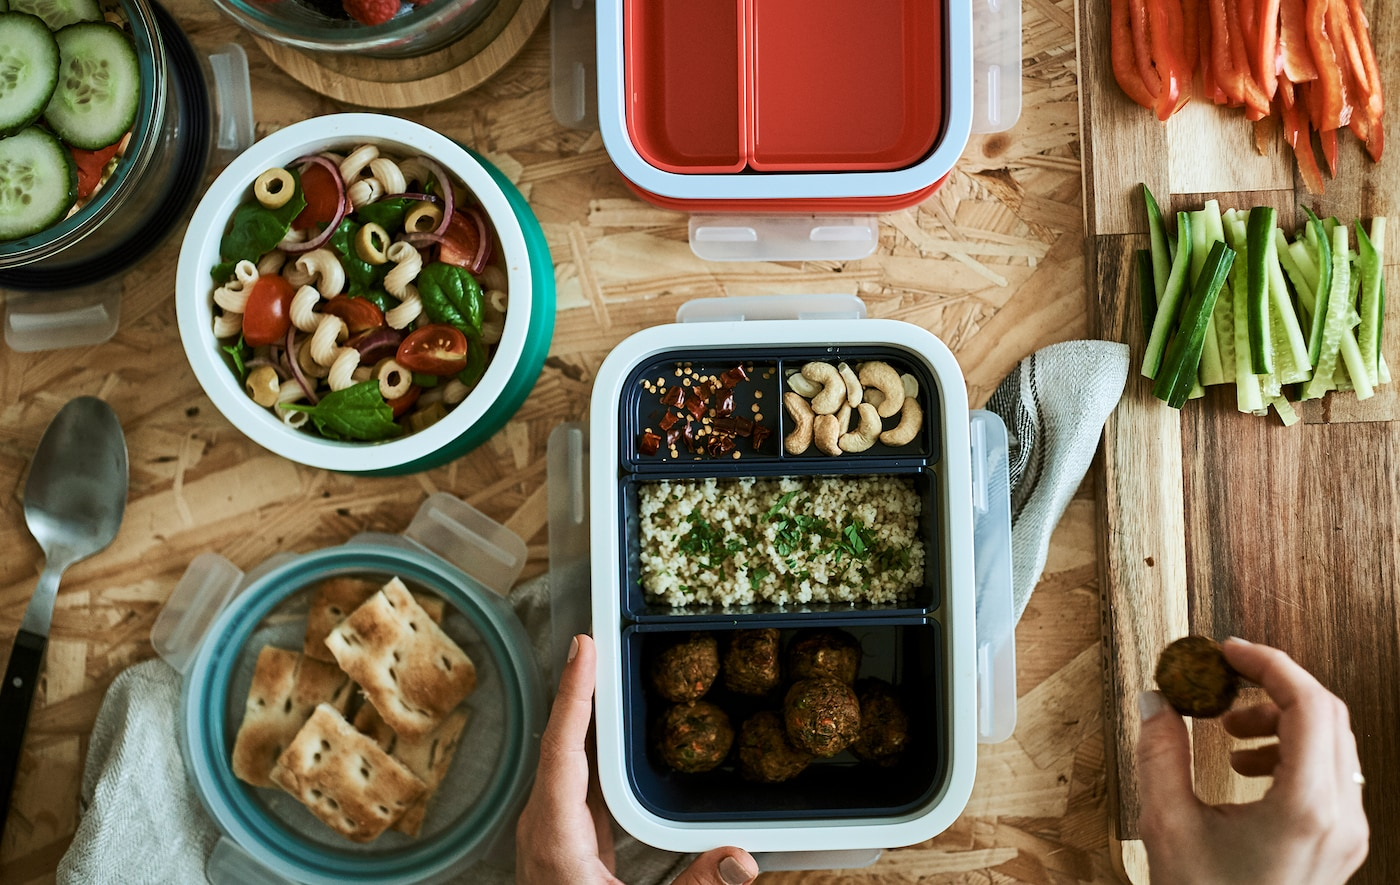 Food being packed into lunchboxes. One has compartments with different food, there's pasta salad in a round plastic tub.